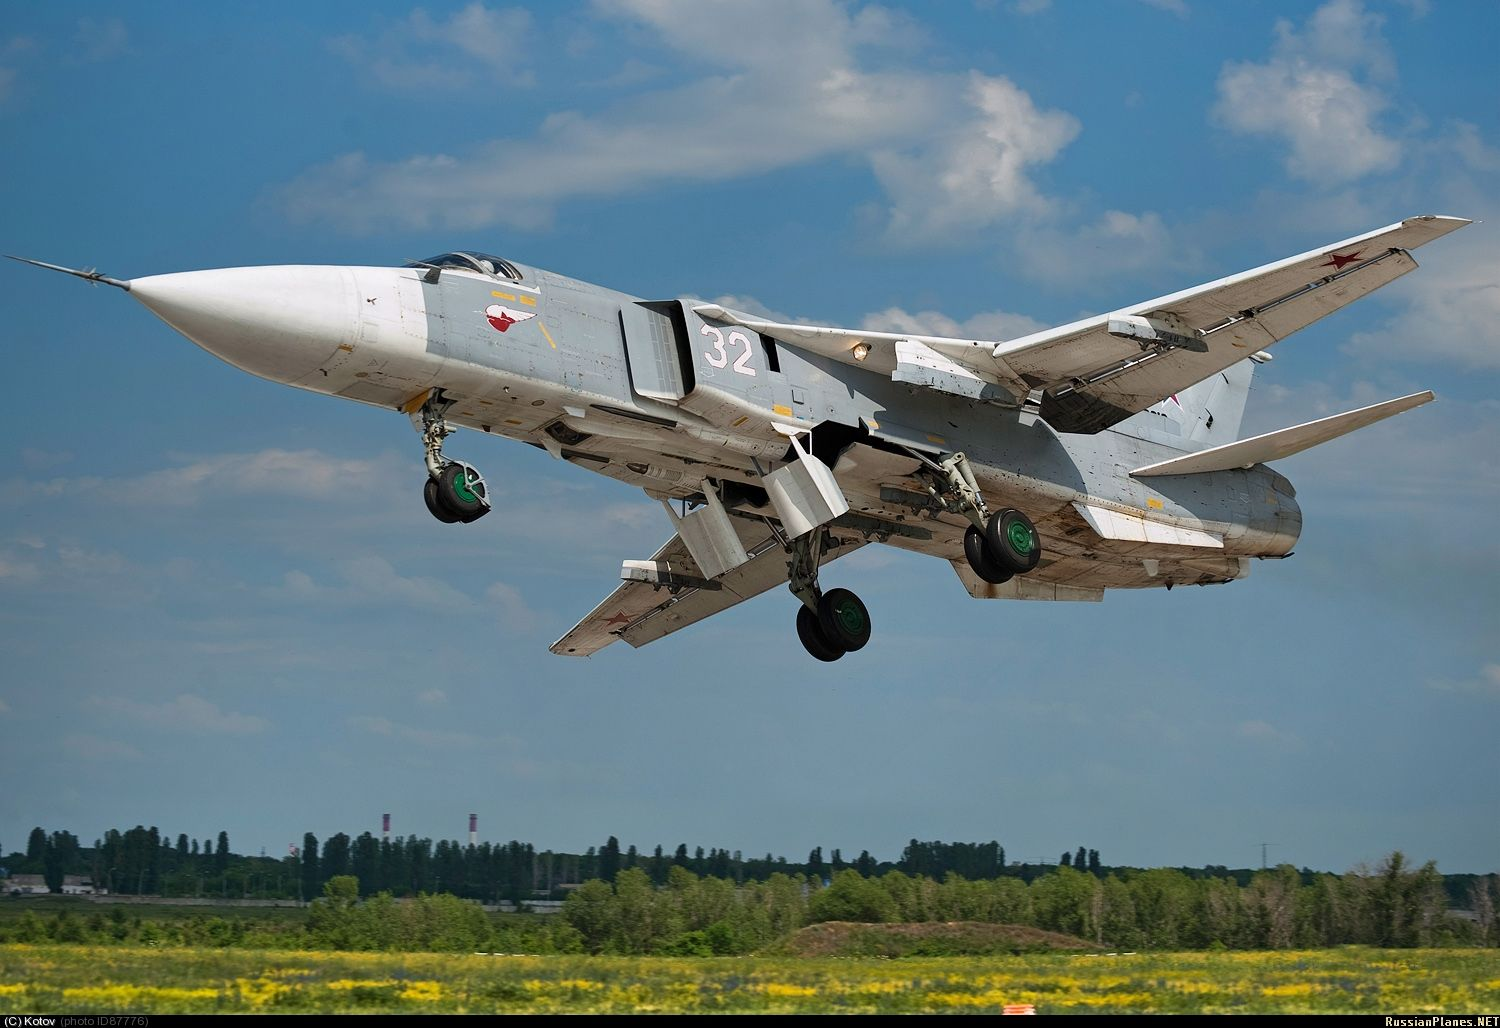 http://russianplanes.net/images/to88000/087776.jpg